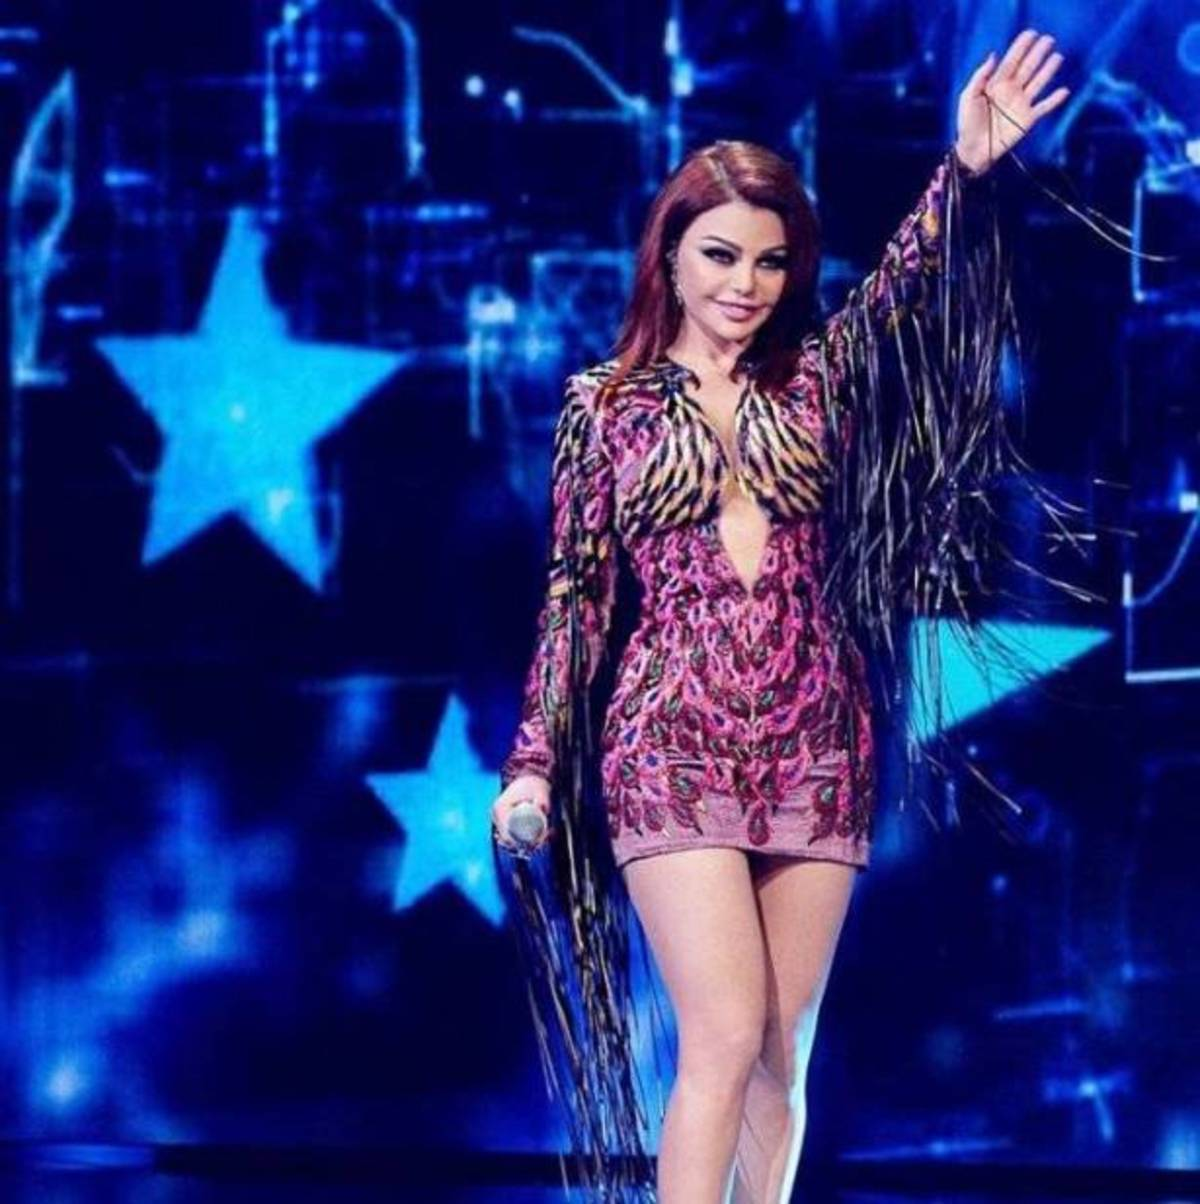 5-happy-birthday-haifa-wehbe-7-times-the-lebanese-bombshell-sparkled-on-stage_644290_large